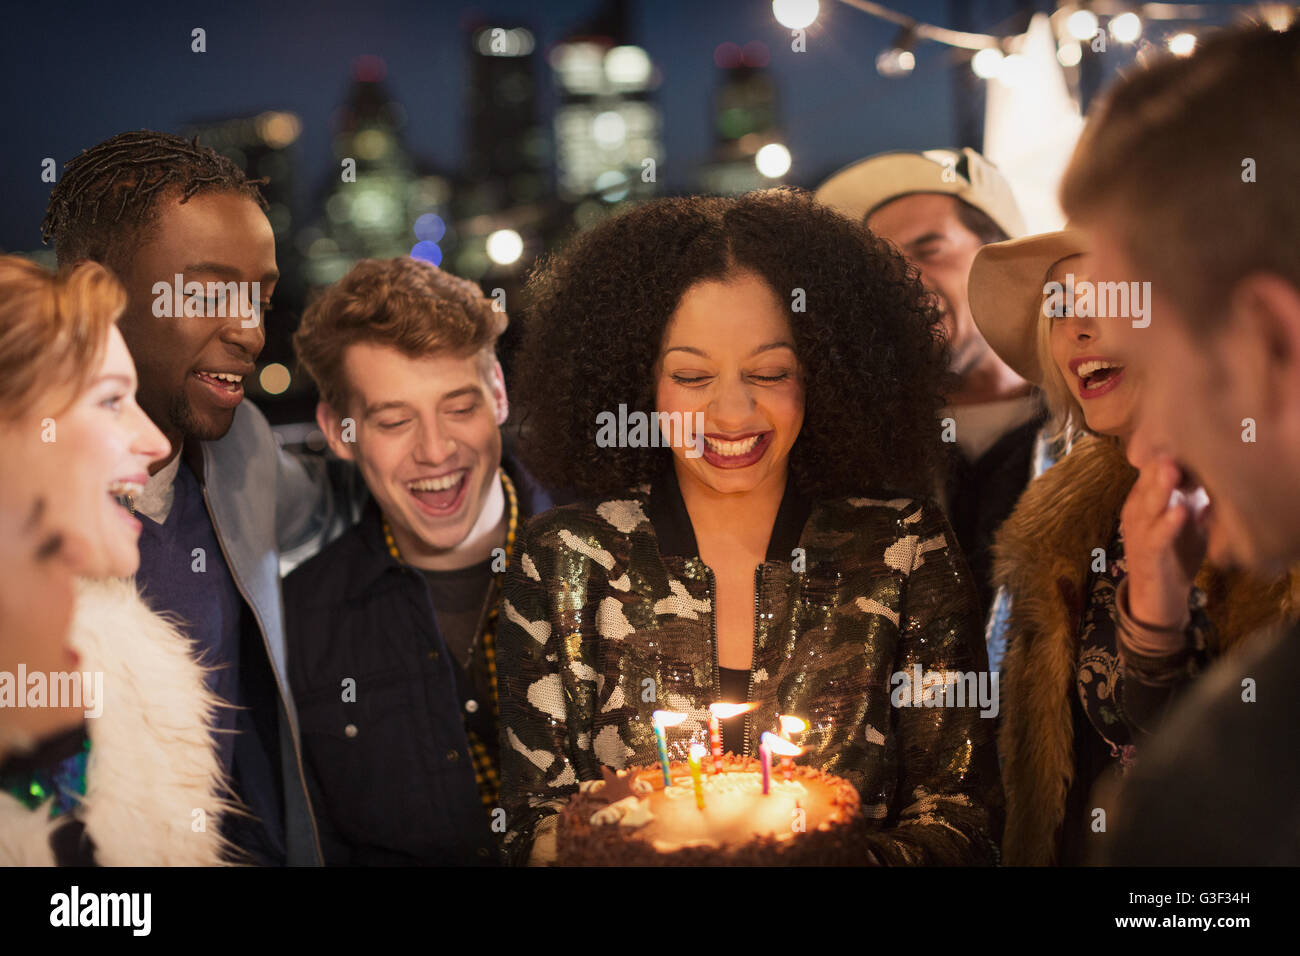 Friends celebrating young woman's birthday with cake and candles Stock Photo